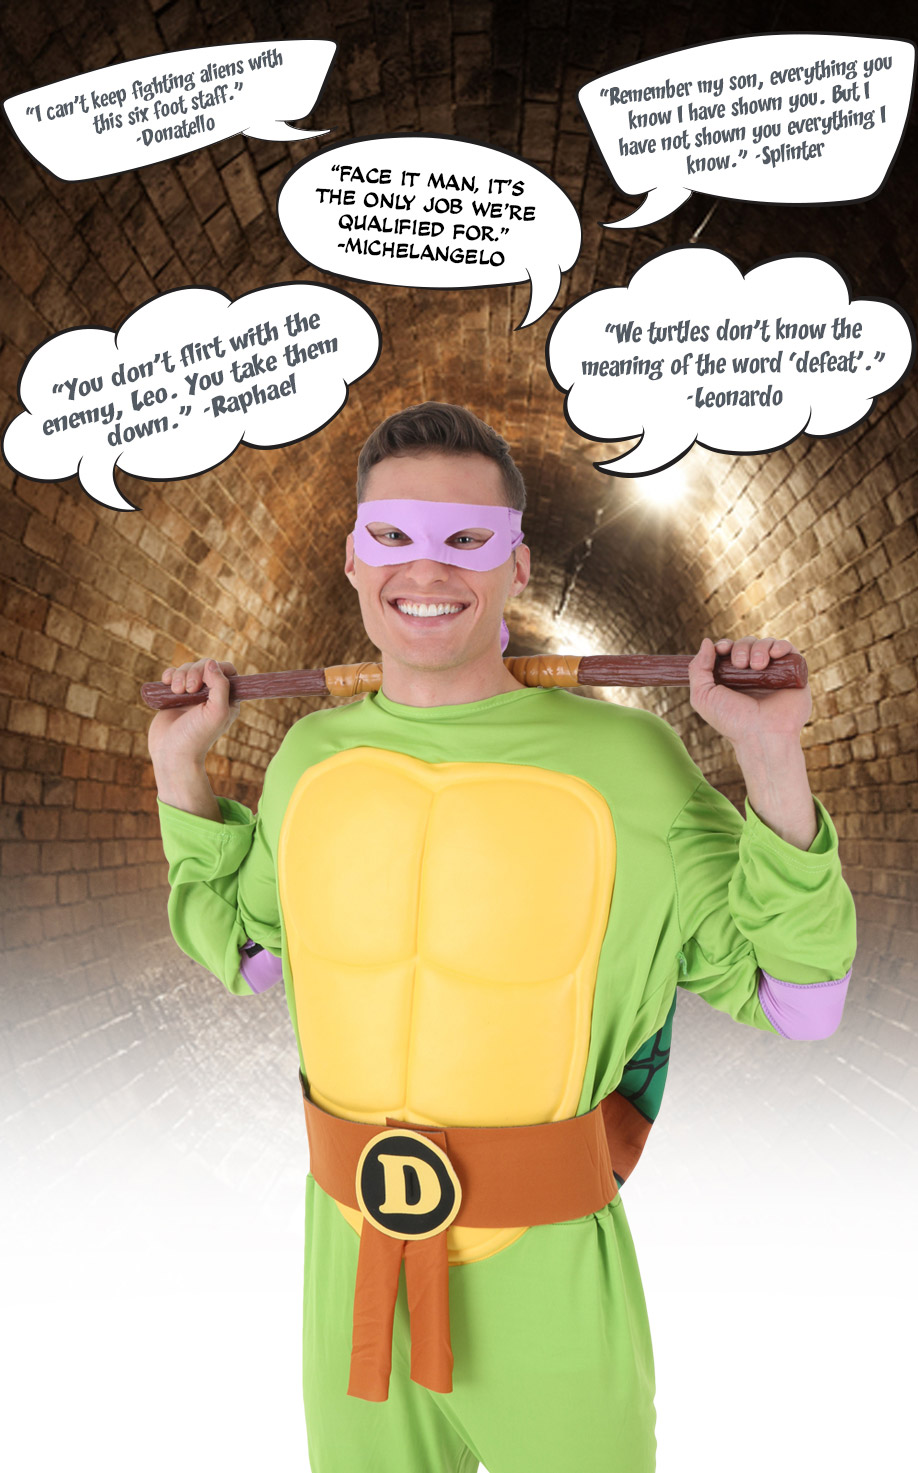 Ninja Turtle Quotes Teenage Mutant Ninja Turtles Costumes  Halloweencostumes